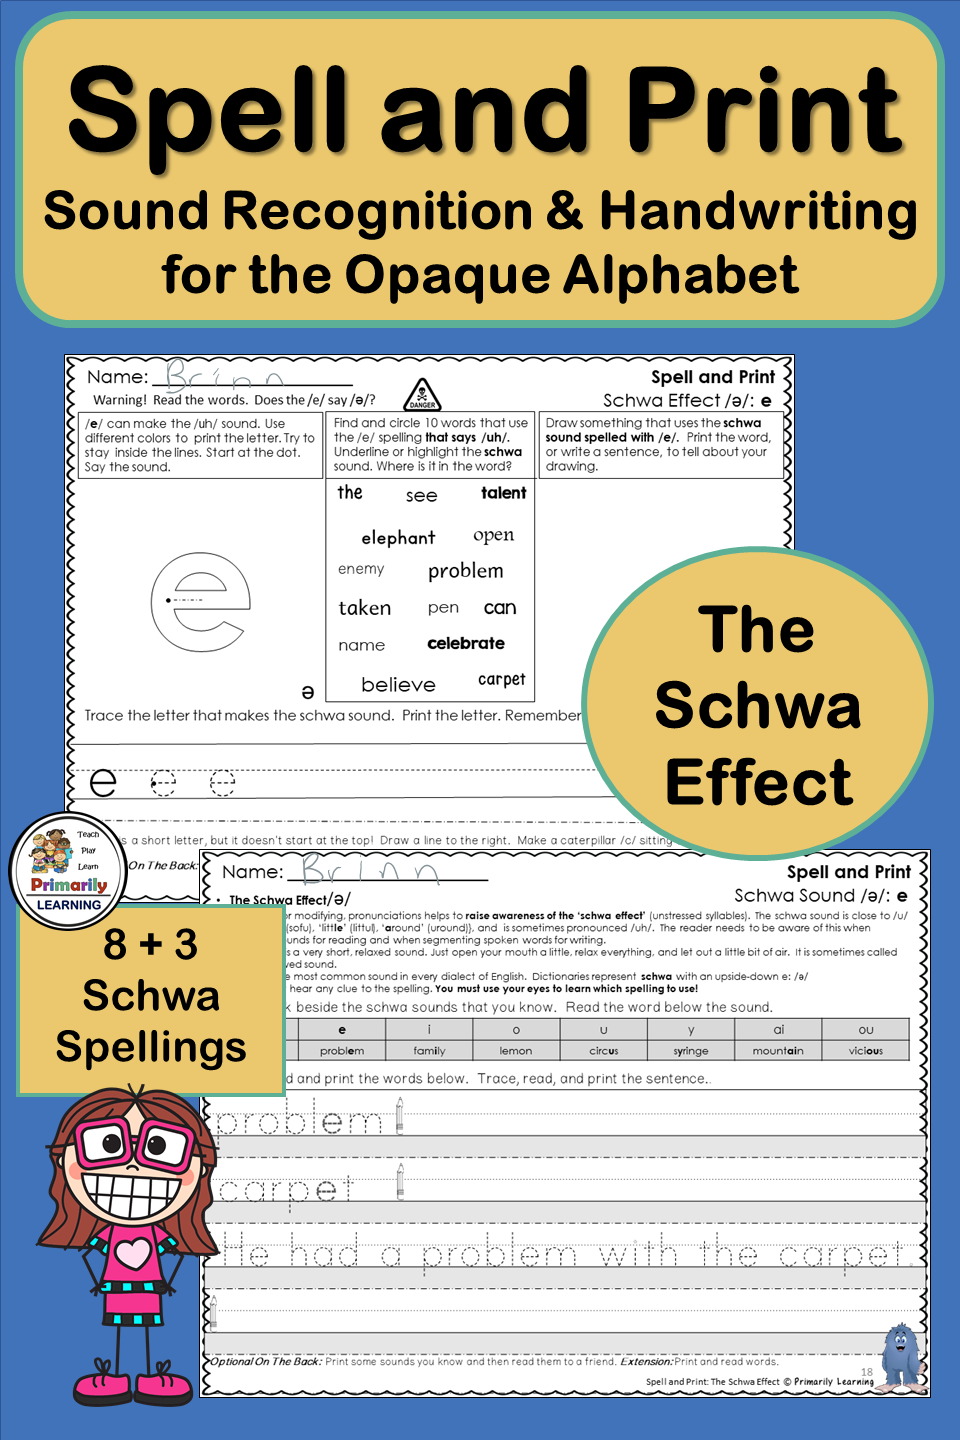 Handwriting And Spelling The Shwa Effect Phonics Programs Schwa Jolly Phonics [ 1440 x 960 Pixel ]